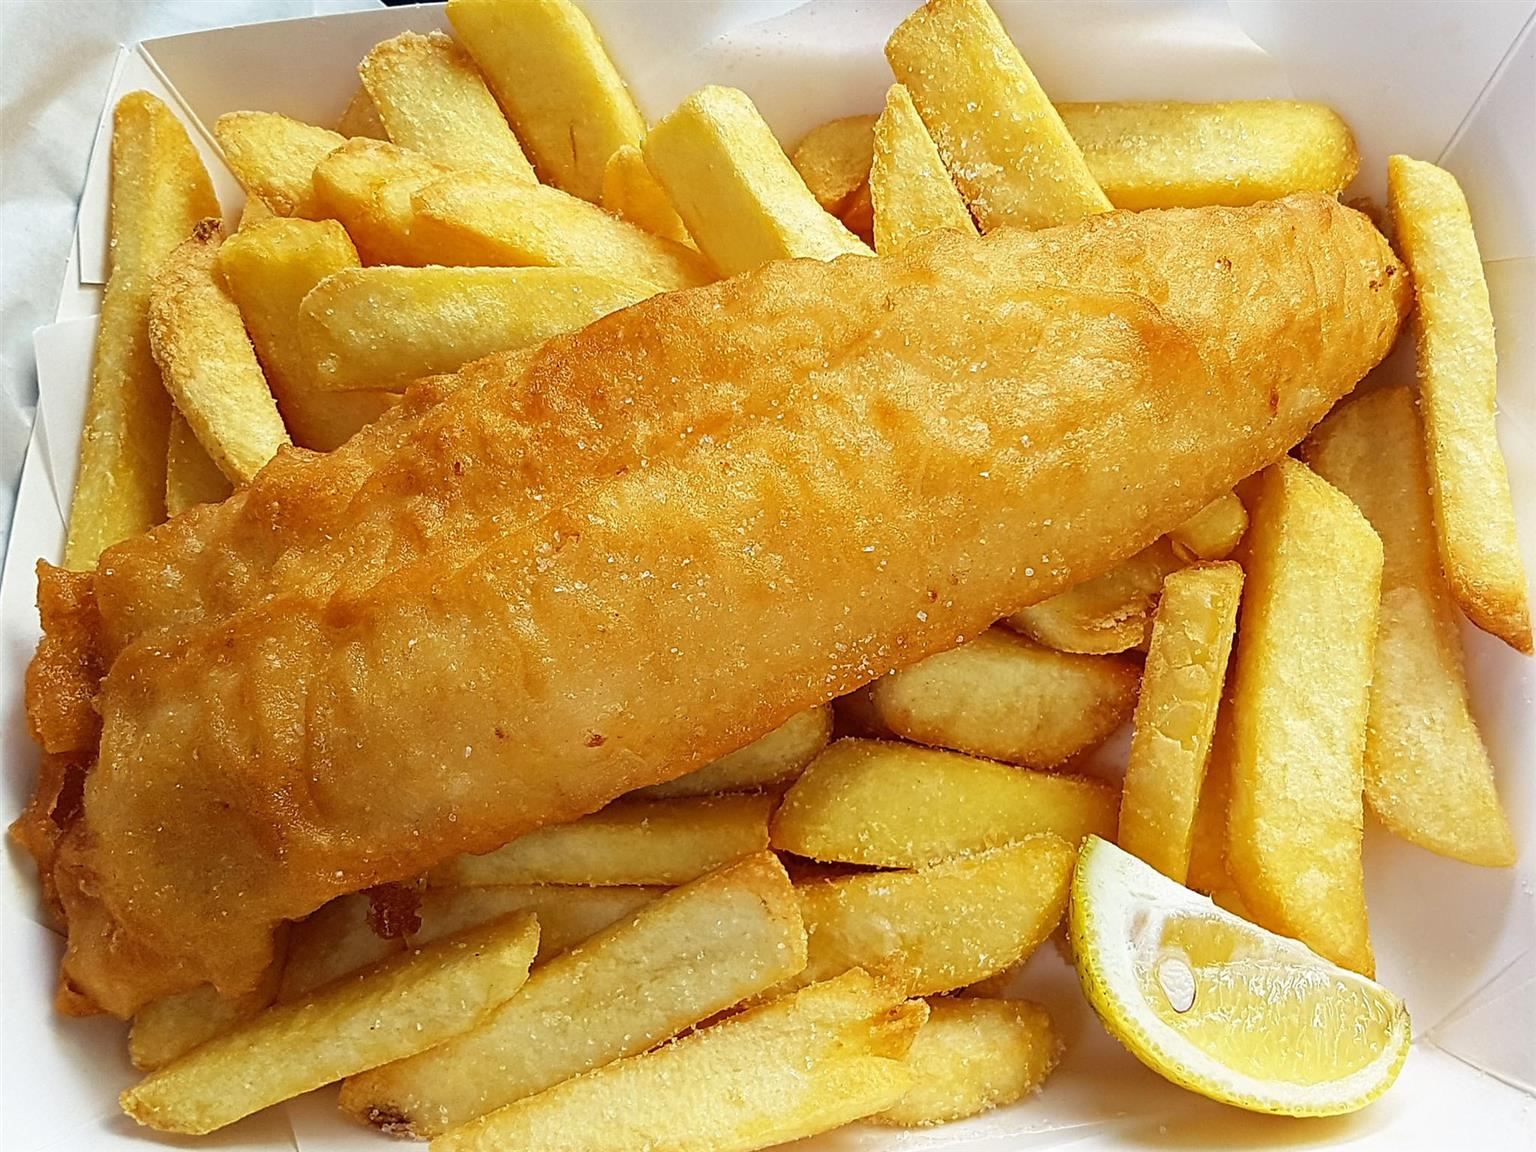 Fish & chips shop (Springs)